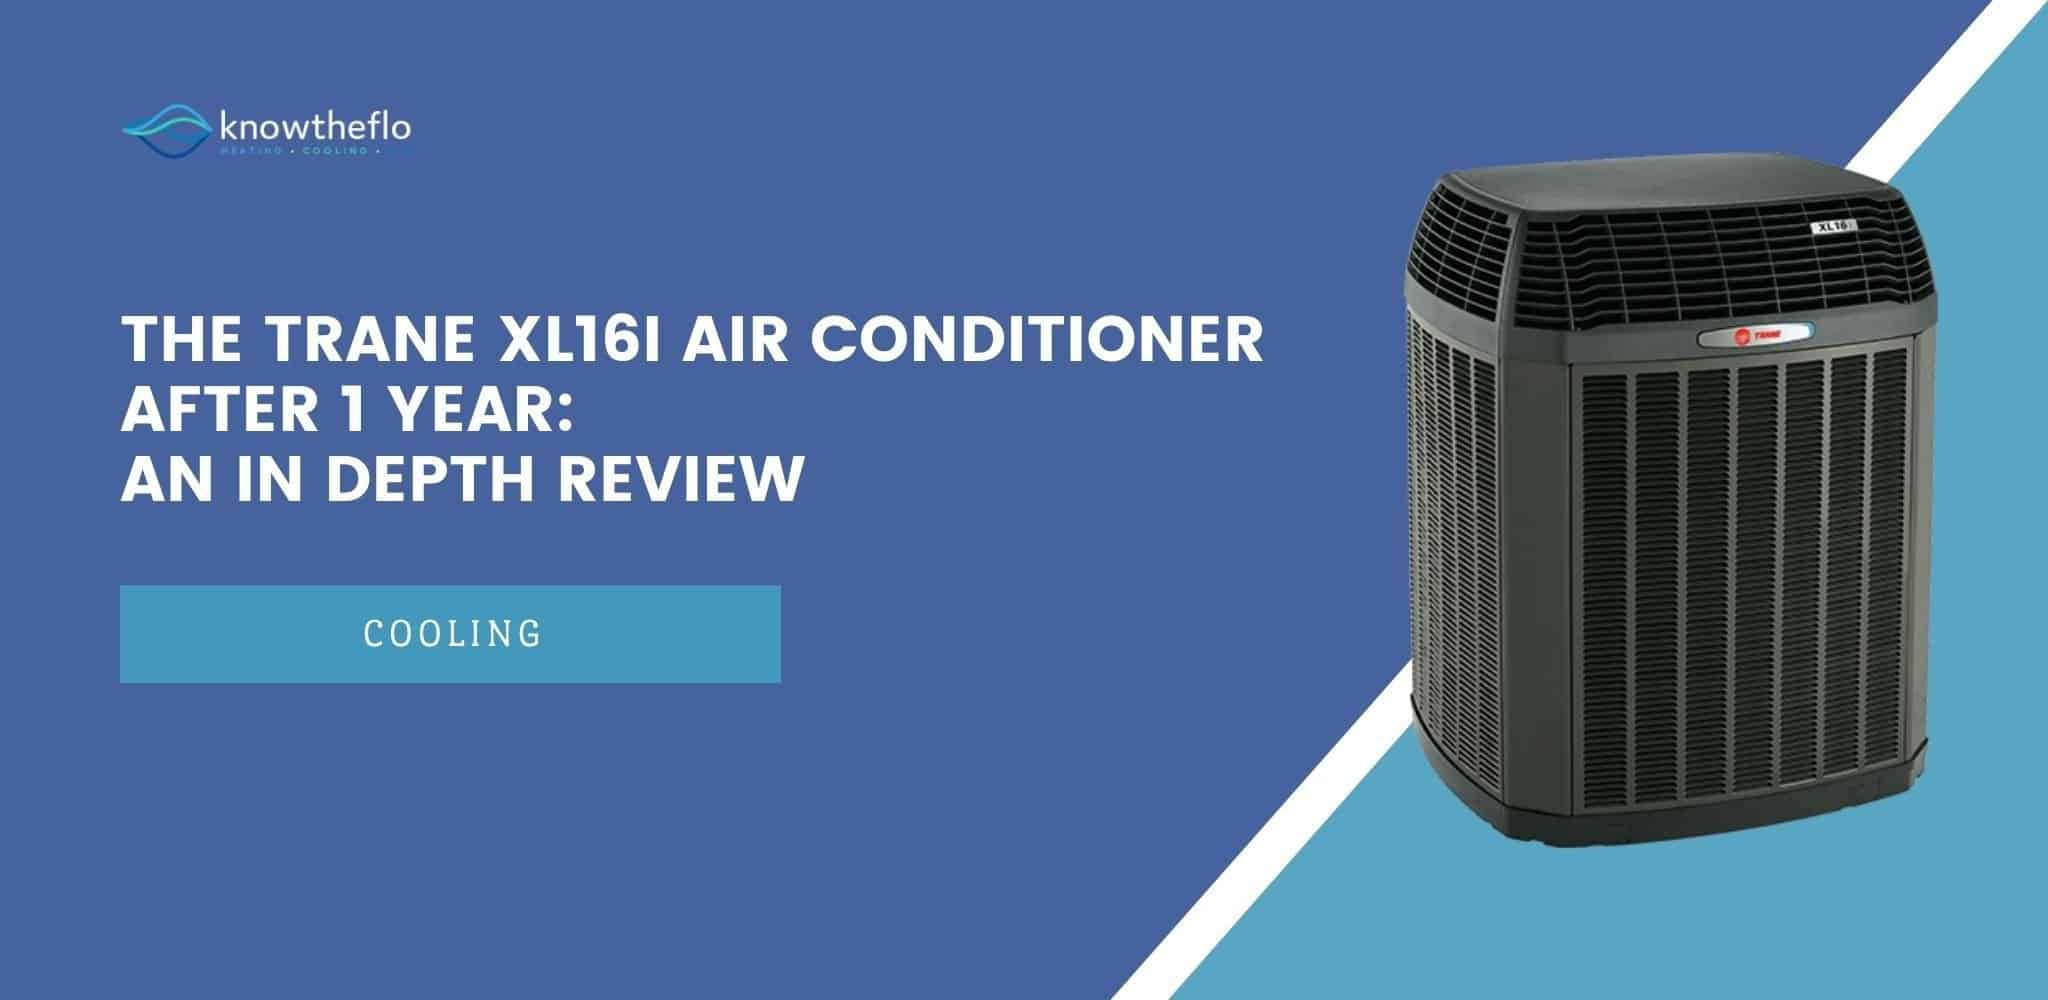 The Trane XL16i Air Conditioner After 1 Year - An In Depth Review